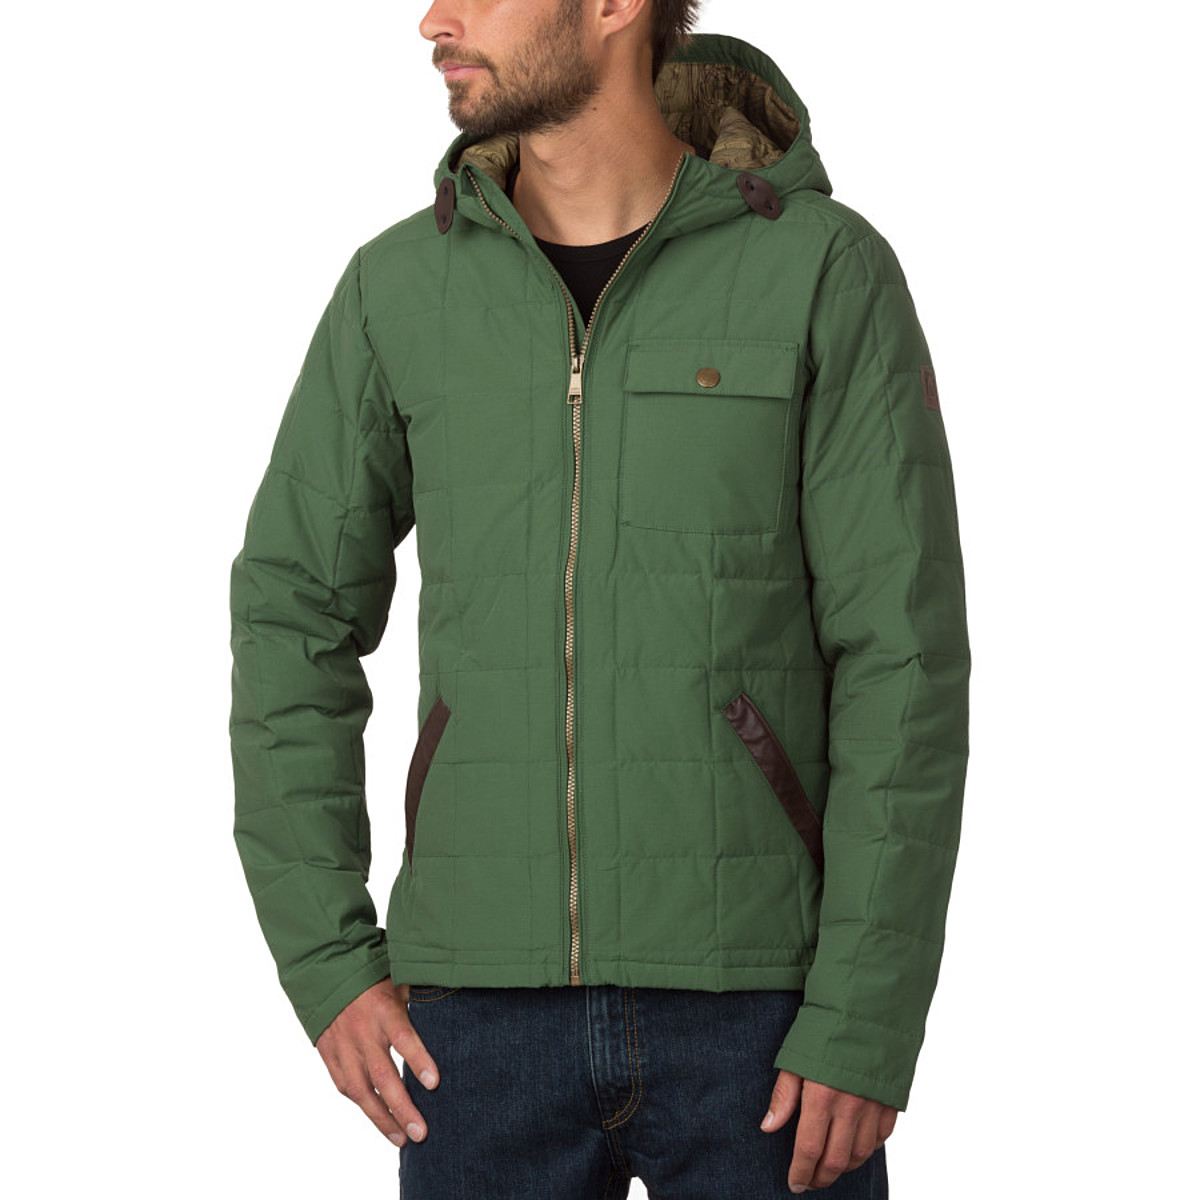 Sierra Designs Revolution Jacket